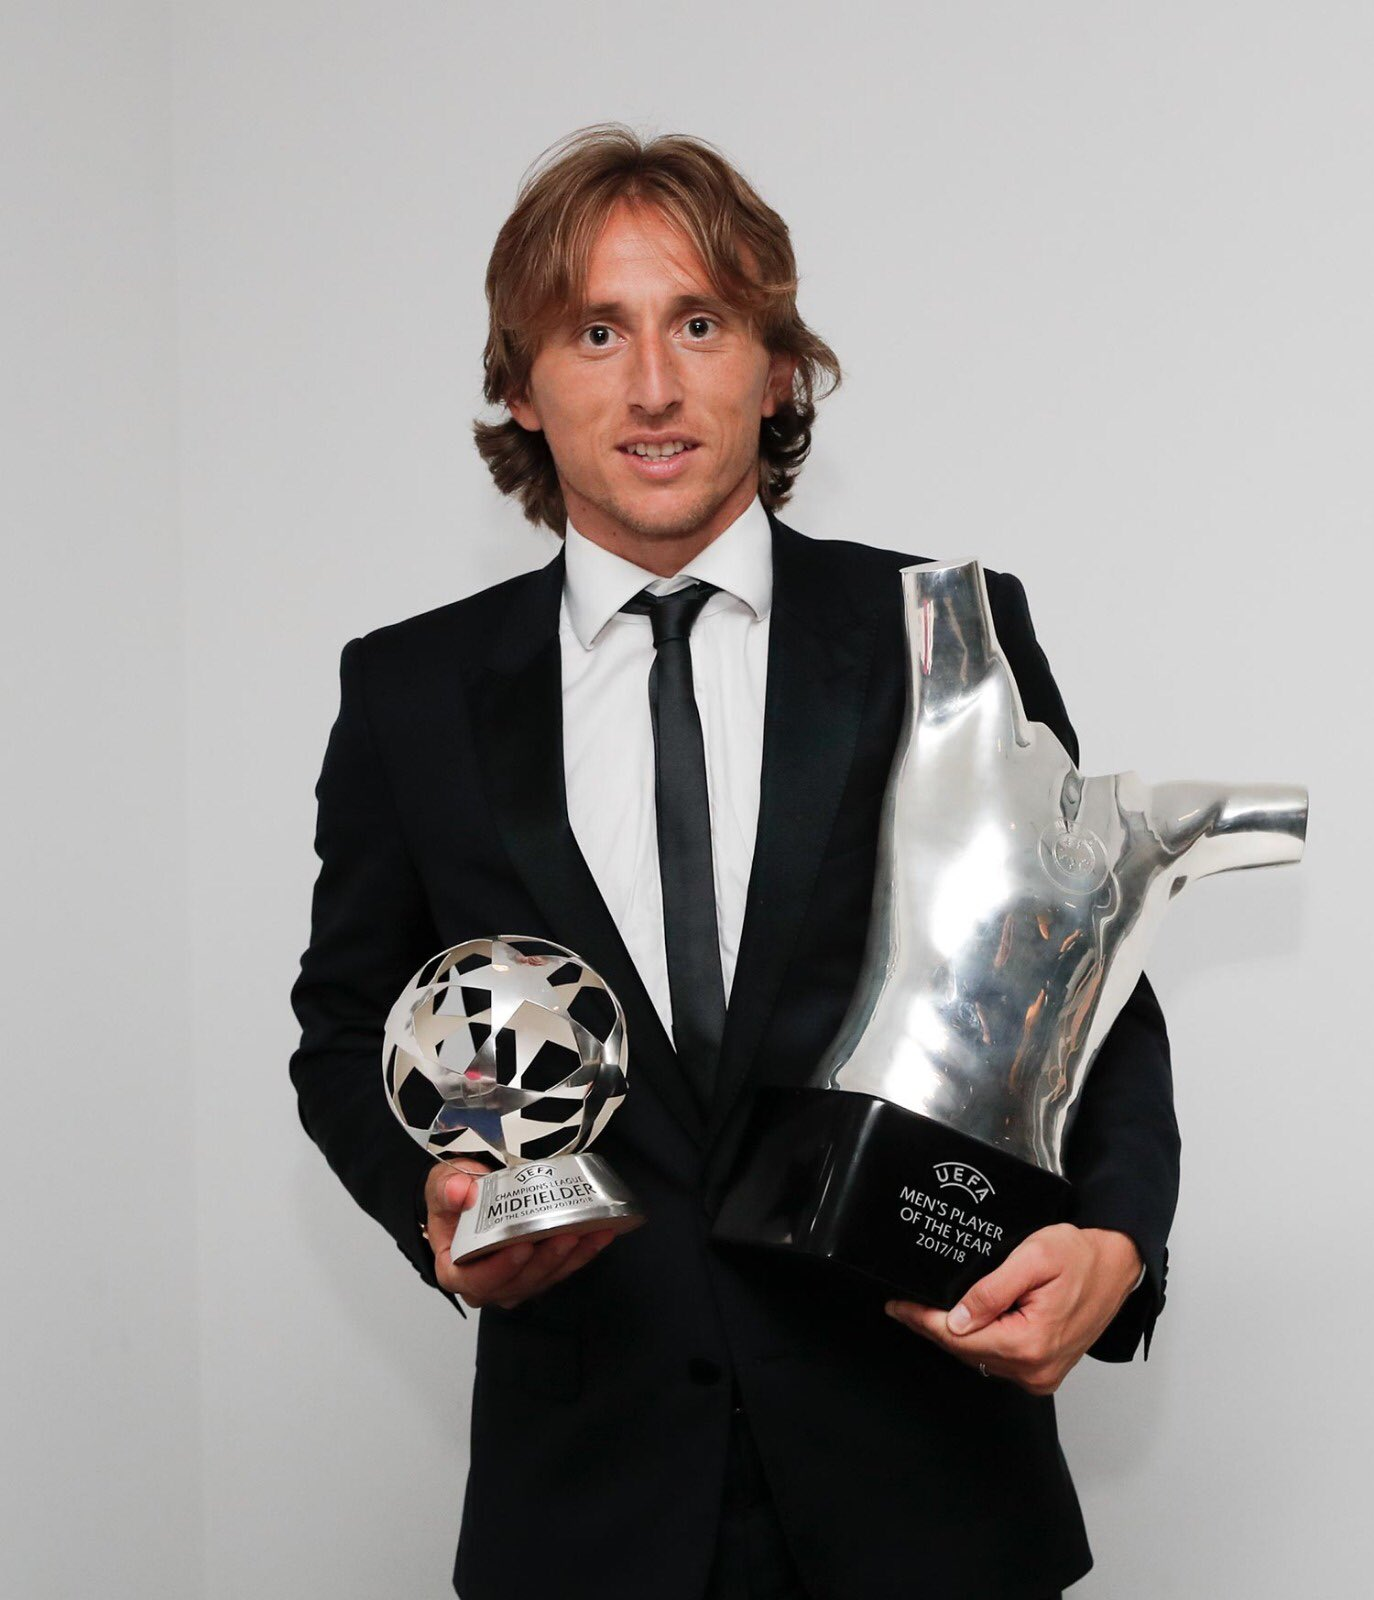 Luka Modric wins UEFA Player of the Year award